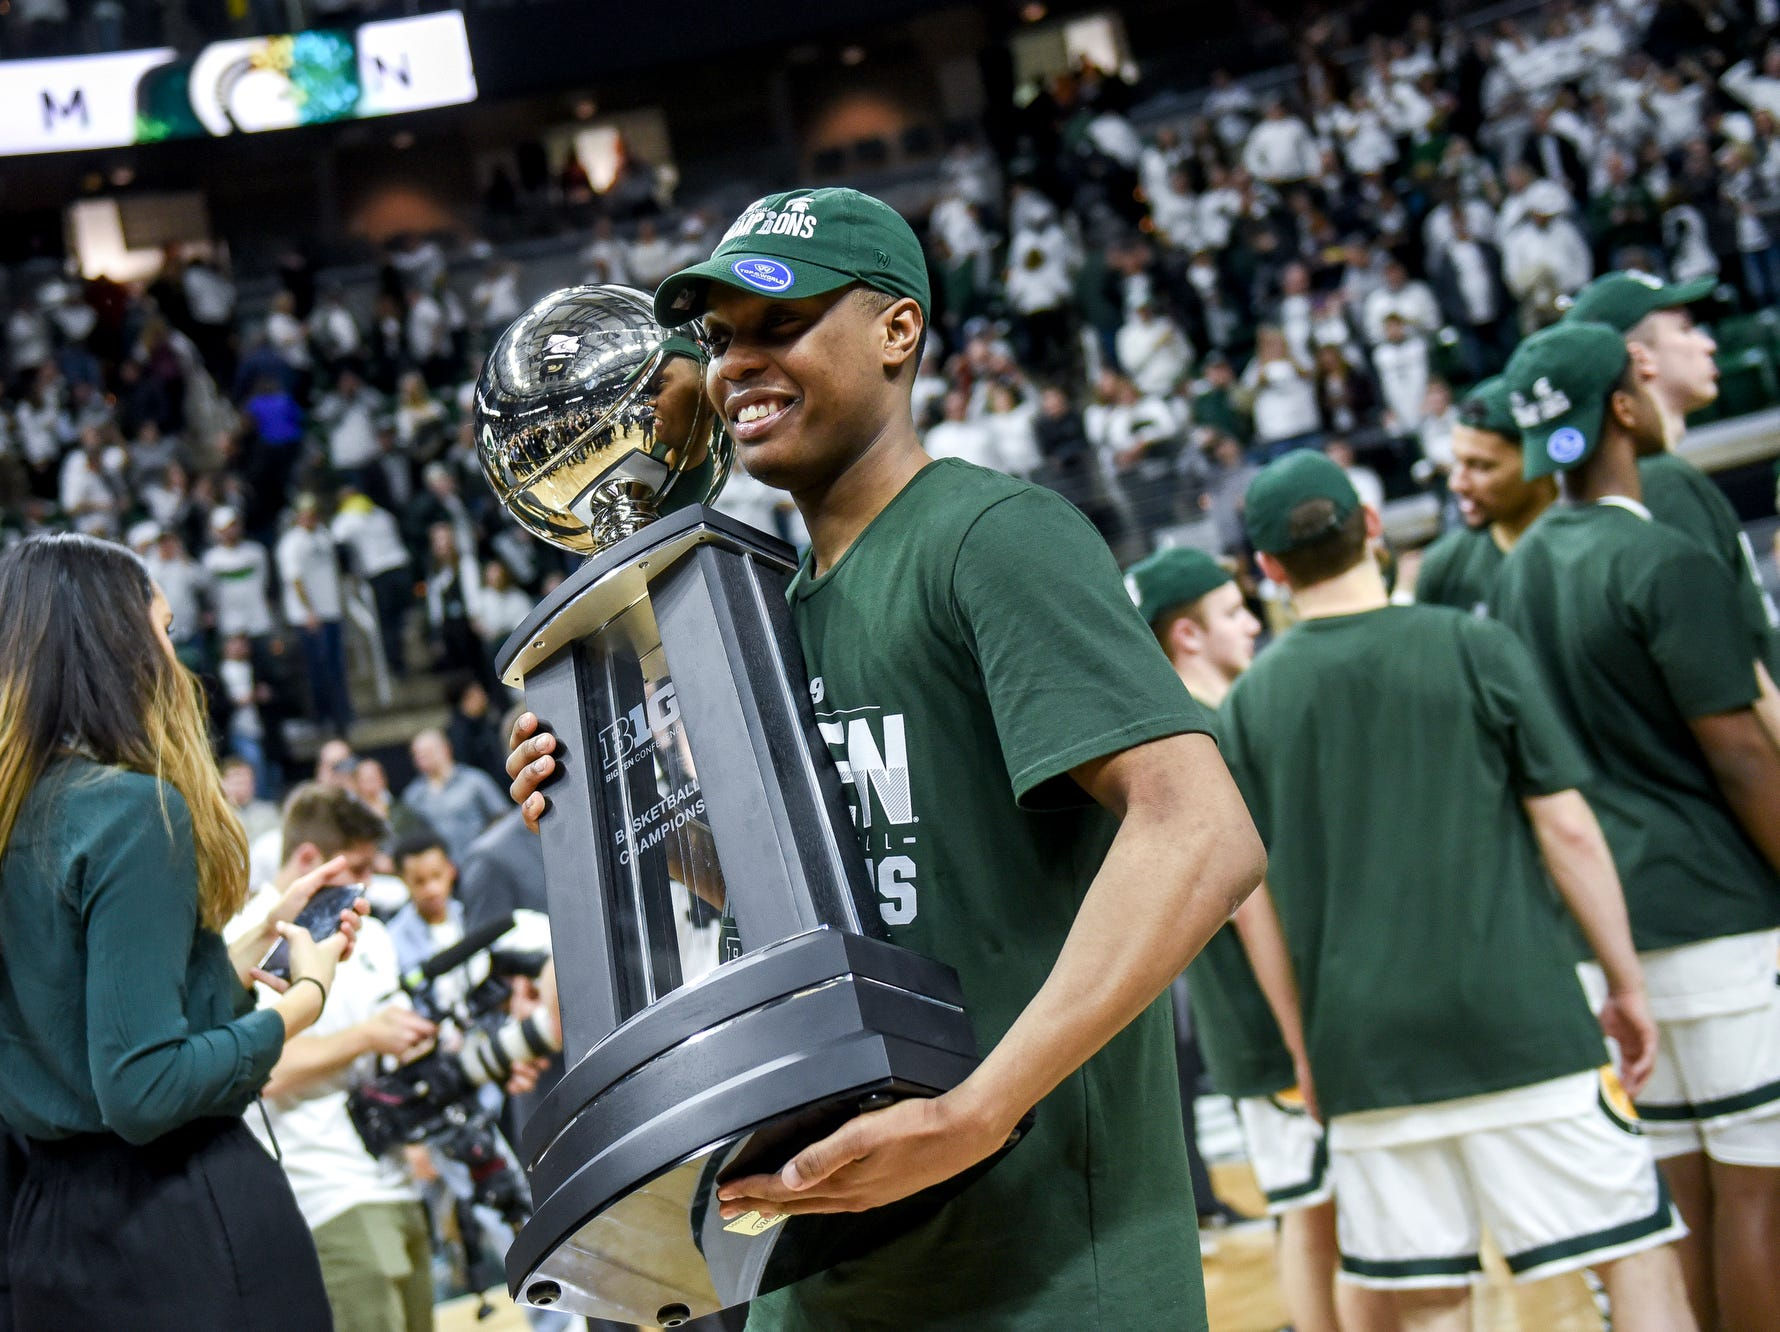 Michigan State's Cassius Winston holds the Big Ten Championship trophy after the game on Saturday, March 9, 2019, at the Breslin Center in East Lansing.